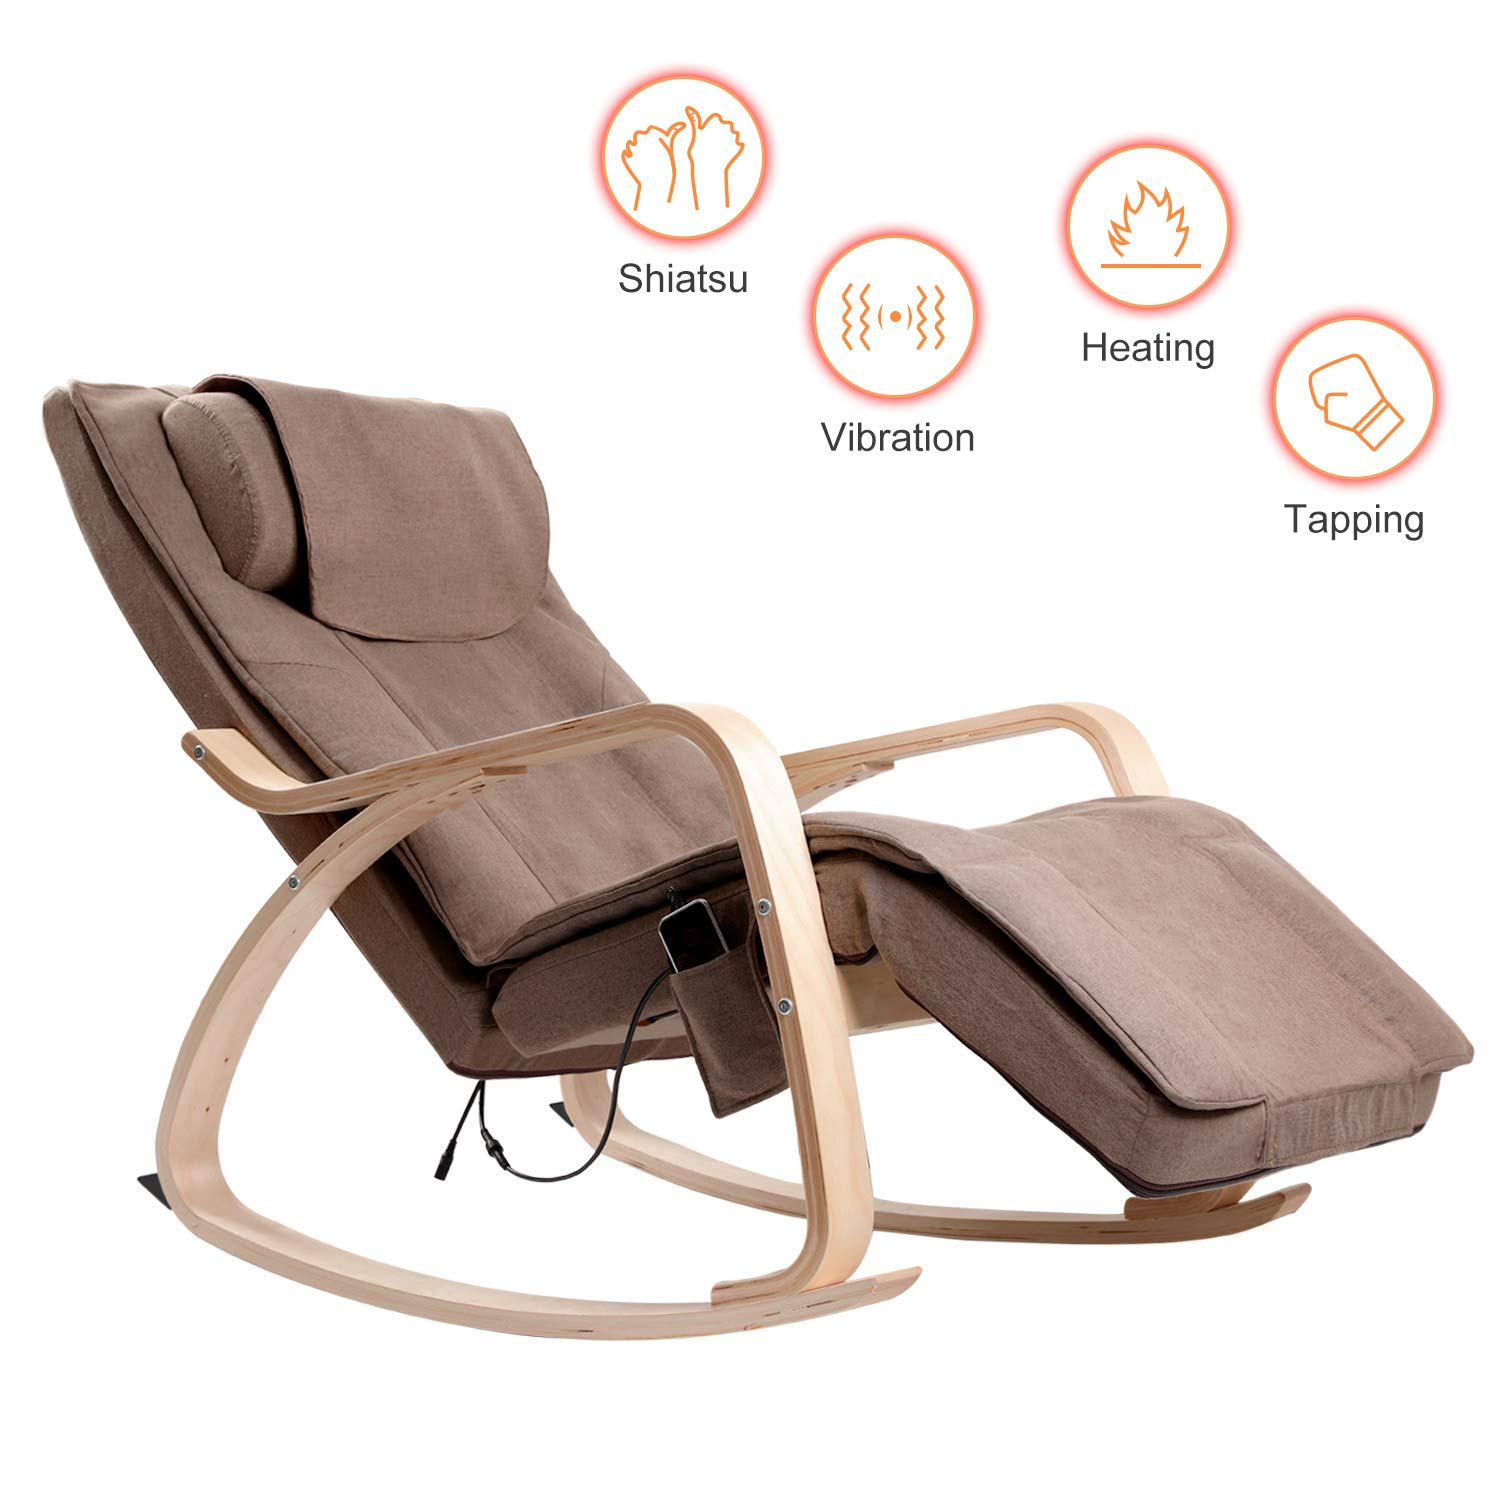 Household Massage Chair Recliner, Rimdoc 3D Full Back Electric Full Body Massage Chair with Rocking Design, Adjustable Pillow, Vibrating and Heating, Relieve Muscle Pain Shiatsu Recliner (Brown)